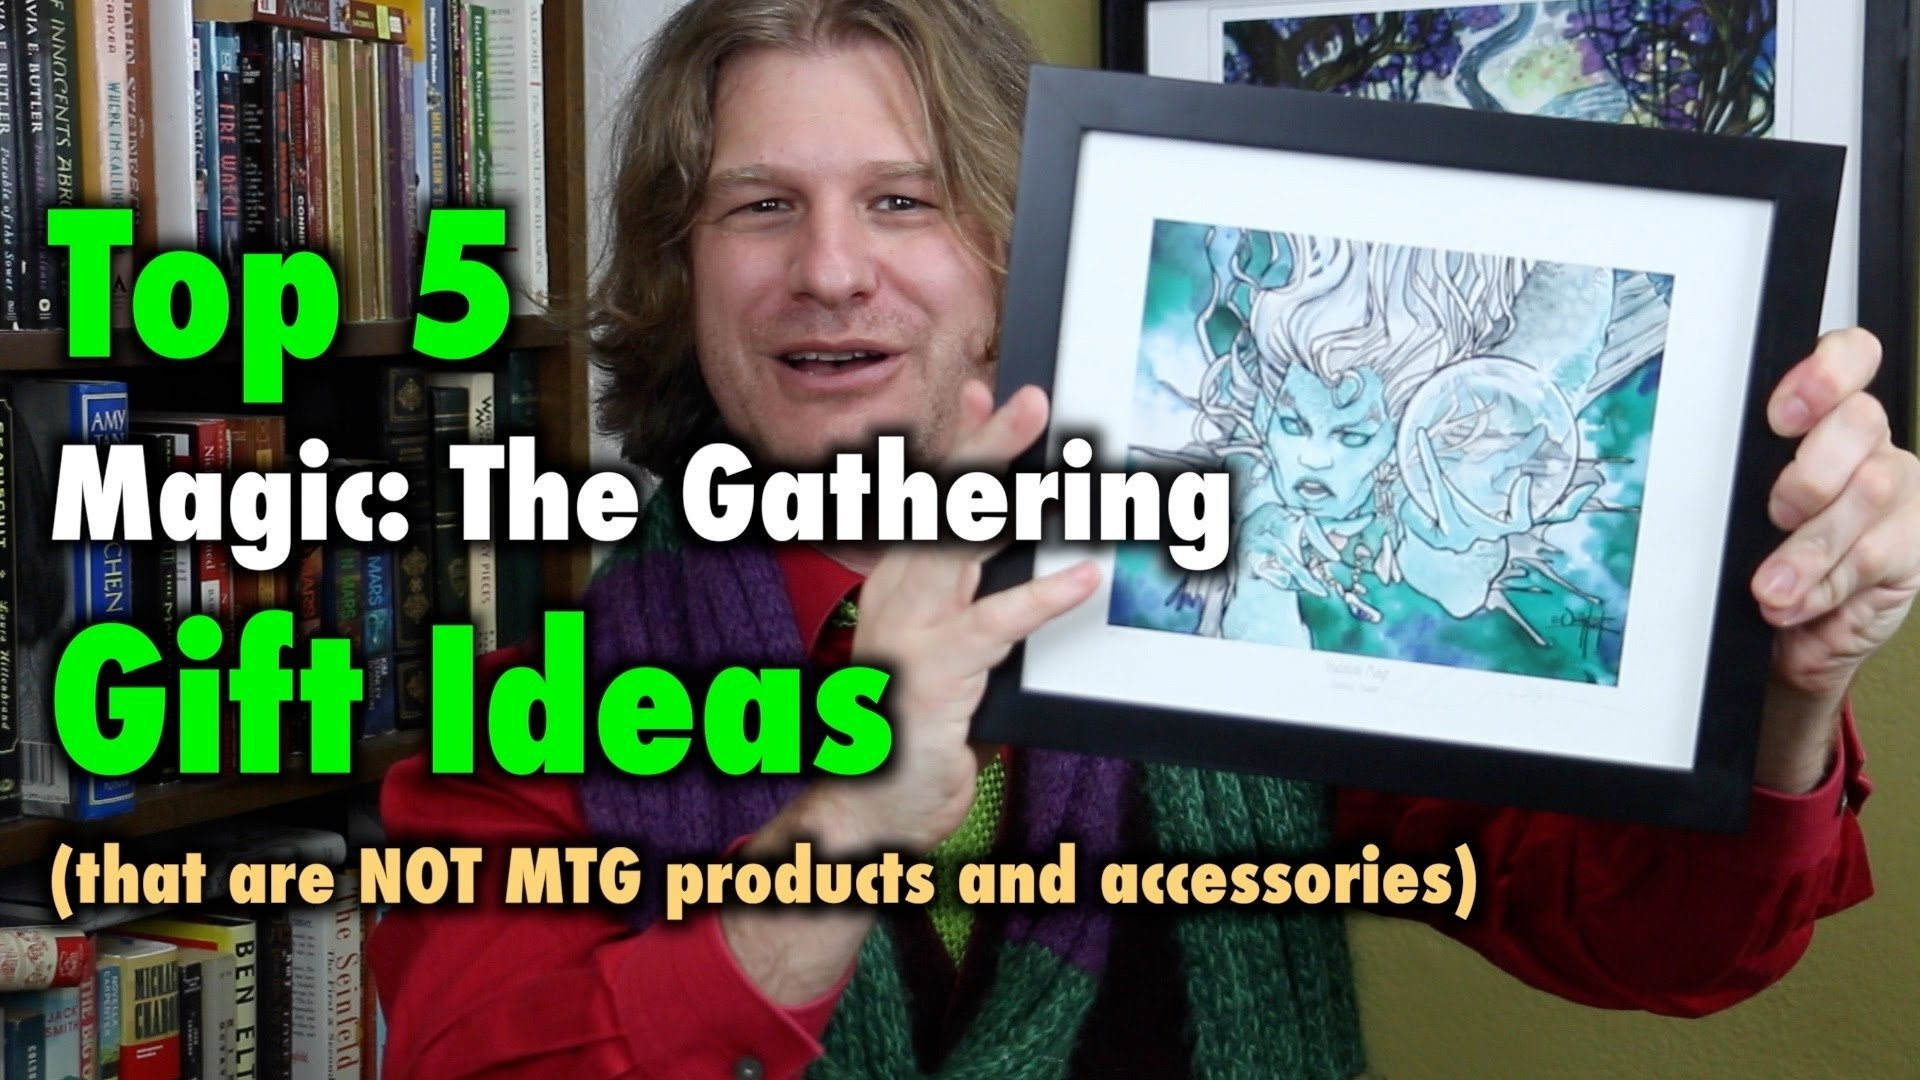 mtg - top 5 magic: the gathering gift ideas that are not products